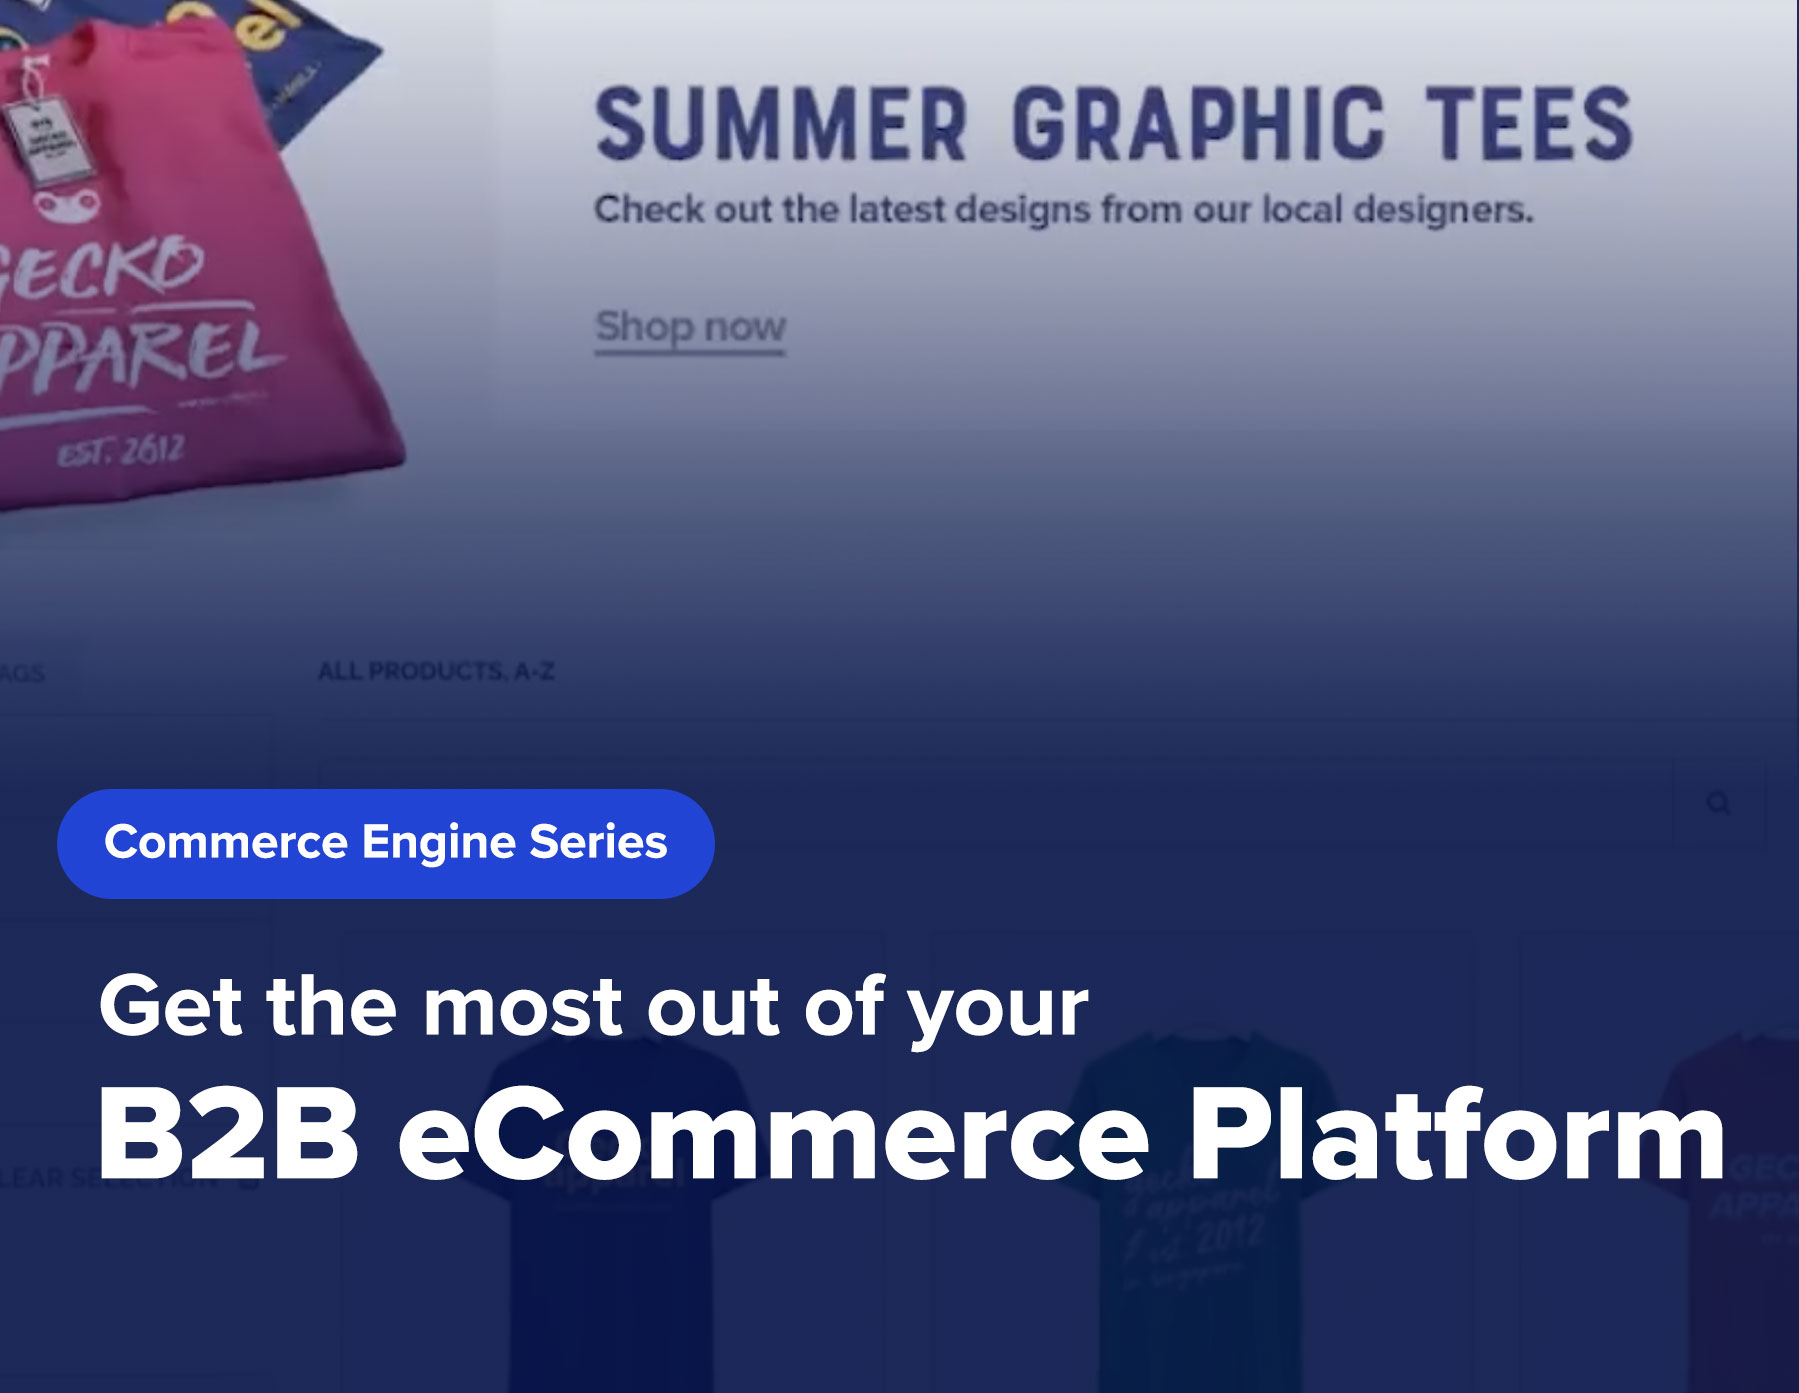 Get the most out of your B2B eCommerce